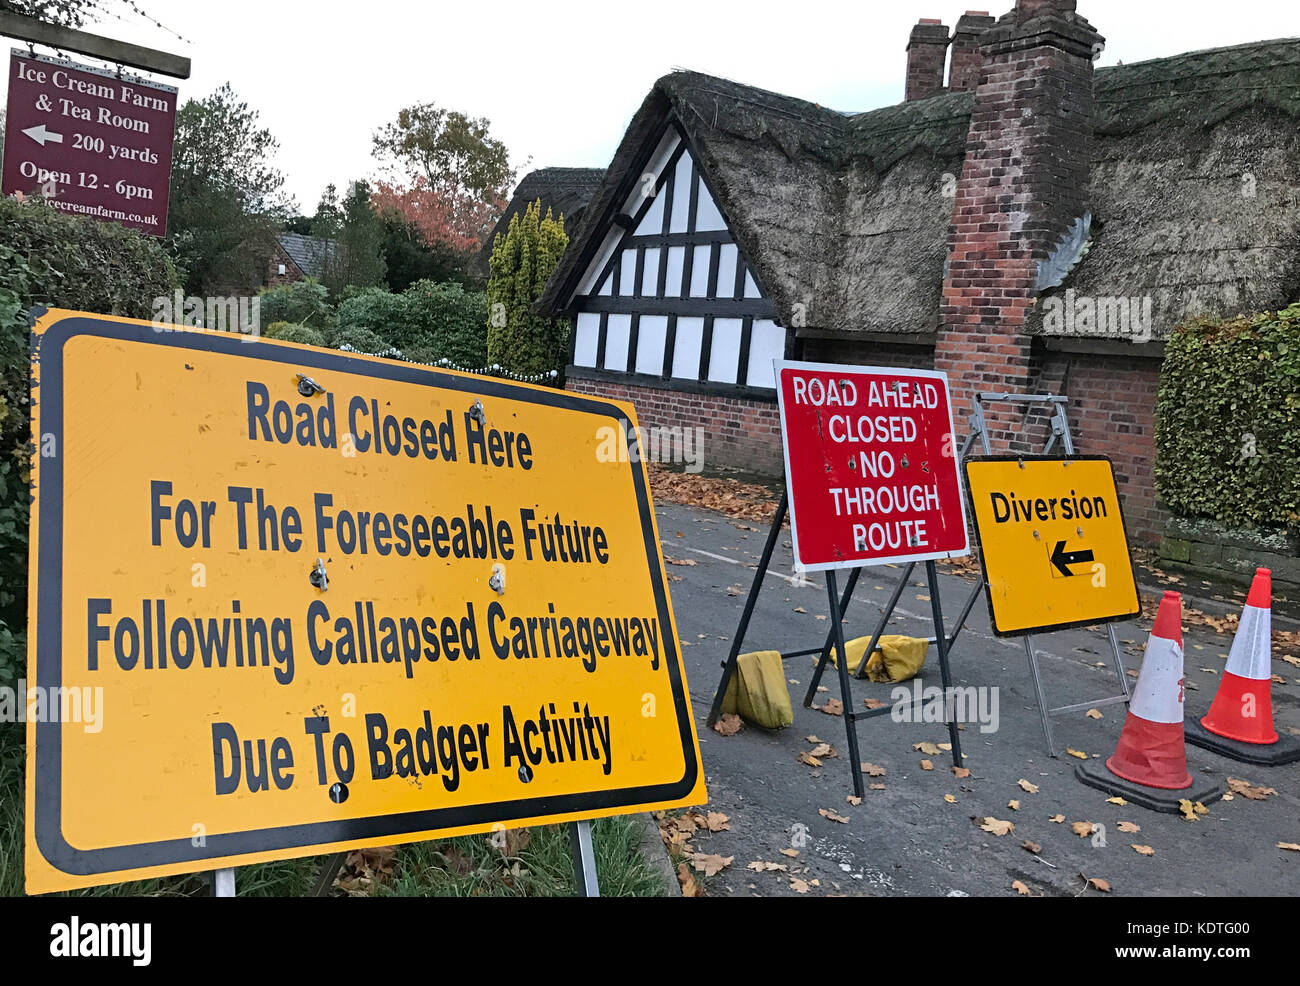 Road Closed Due To Badger Damage - Stock Image